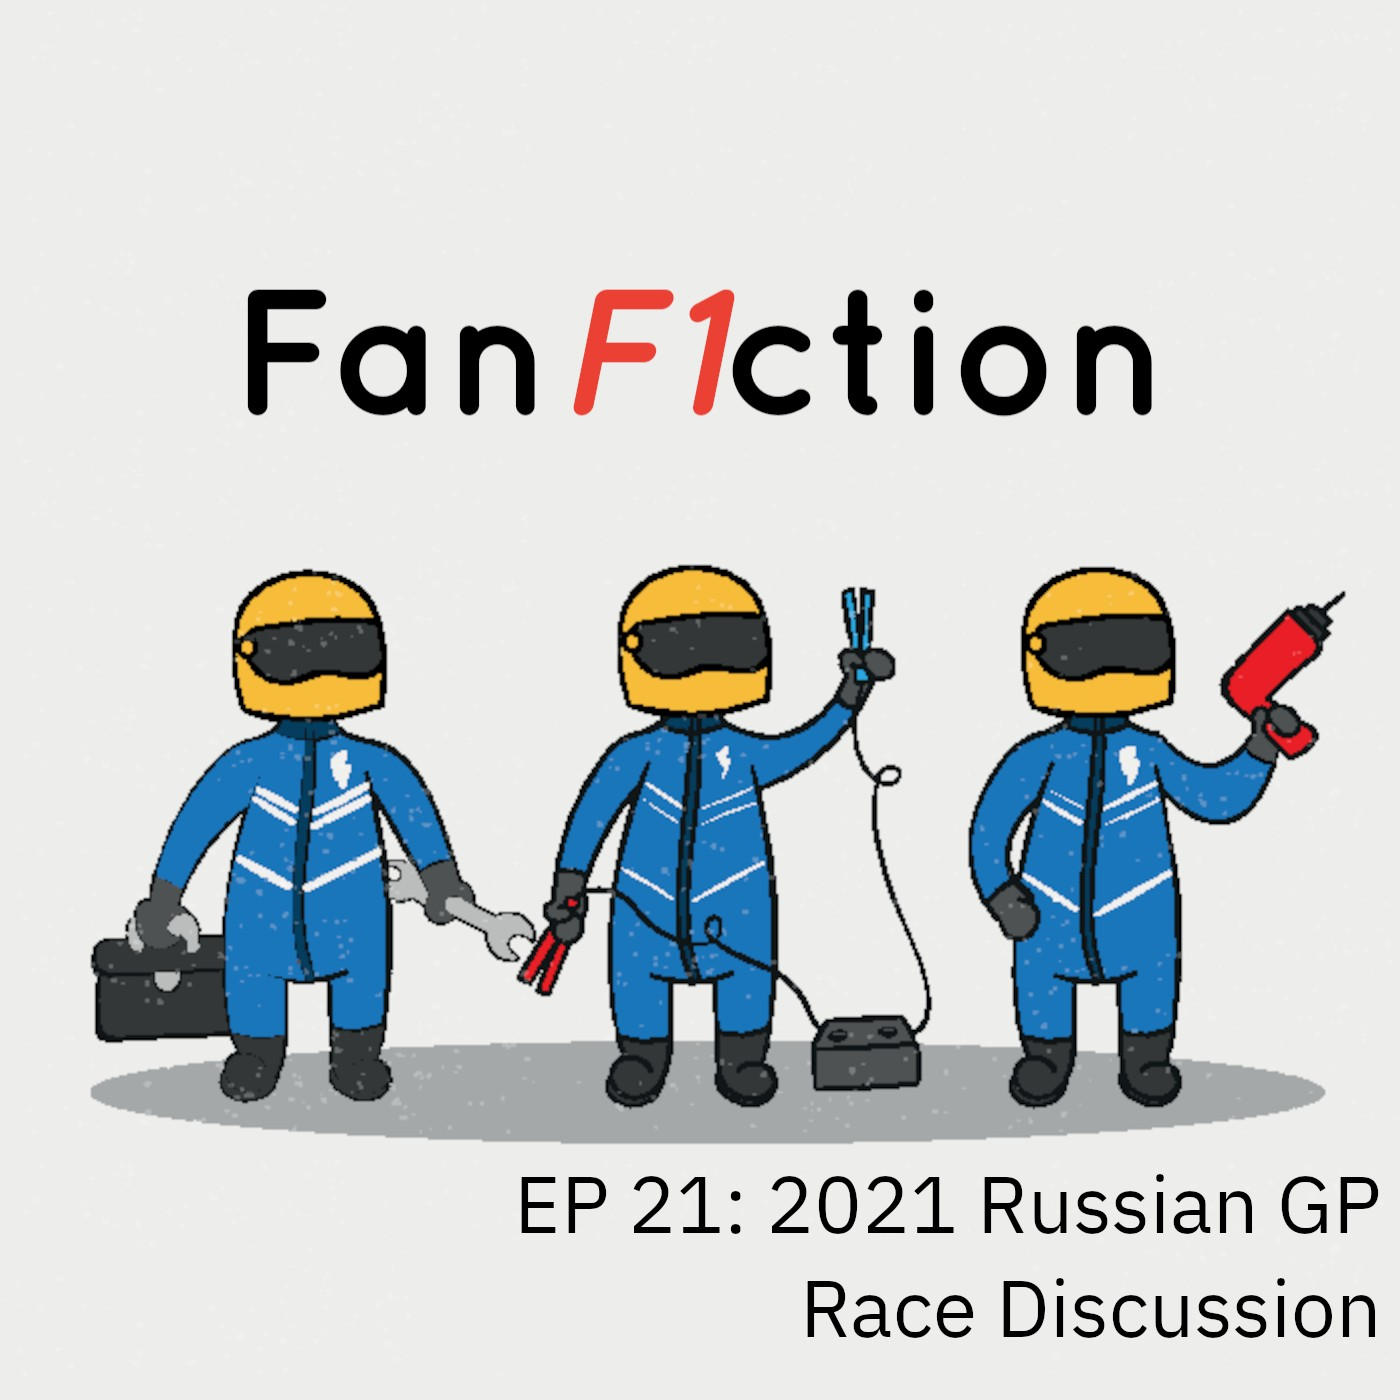 2021 Russian GP Race Discussion